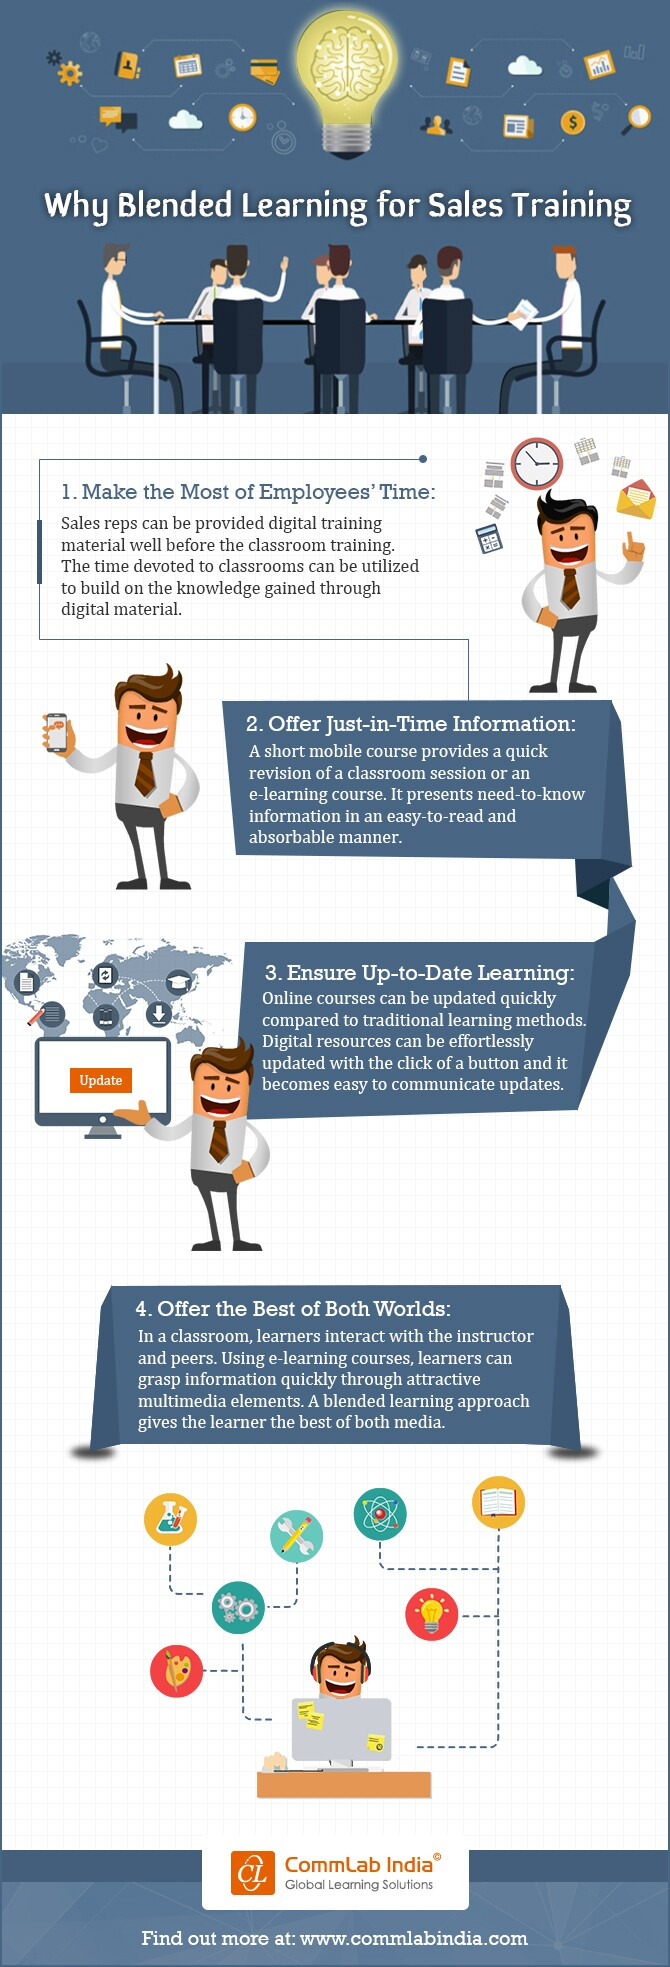 blended-learning-for-sales-training-infographic2